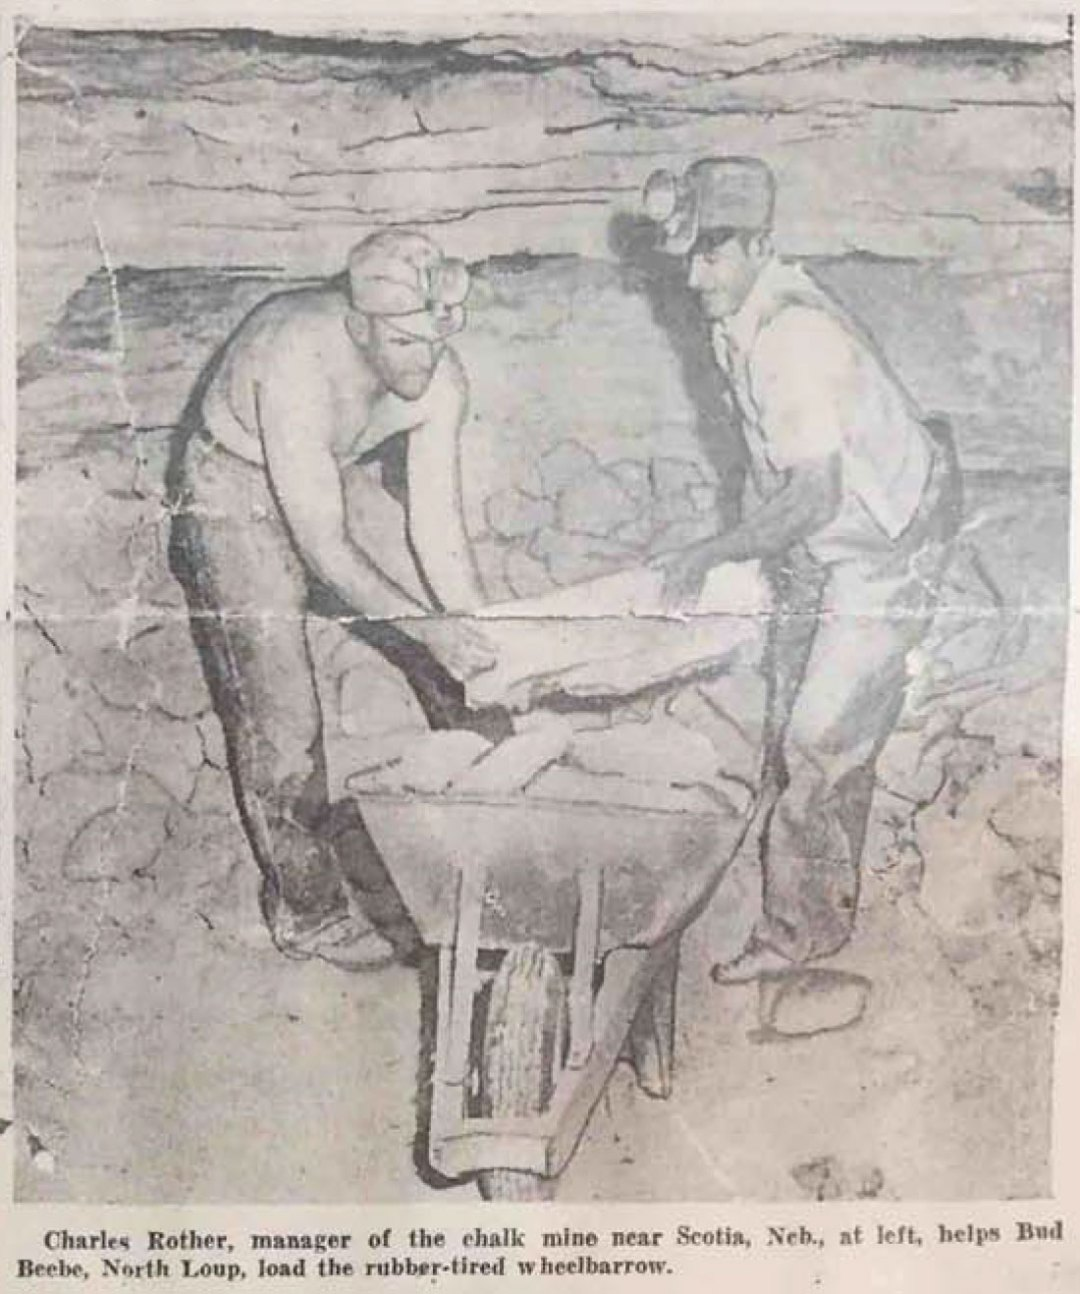 Charles Rother, manager of the chalk mine near Scotia, Neb, at left helps Bud Beebe, North Loup, load the rubber-tired wheelbarrow. Photo Credit: Omaha World Herald, Sept. 19, 1943